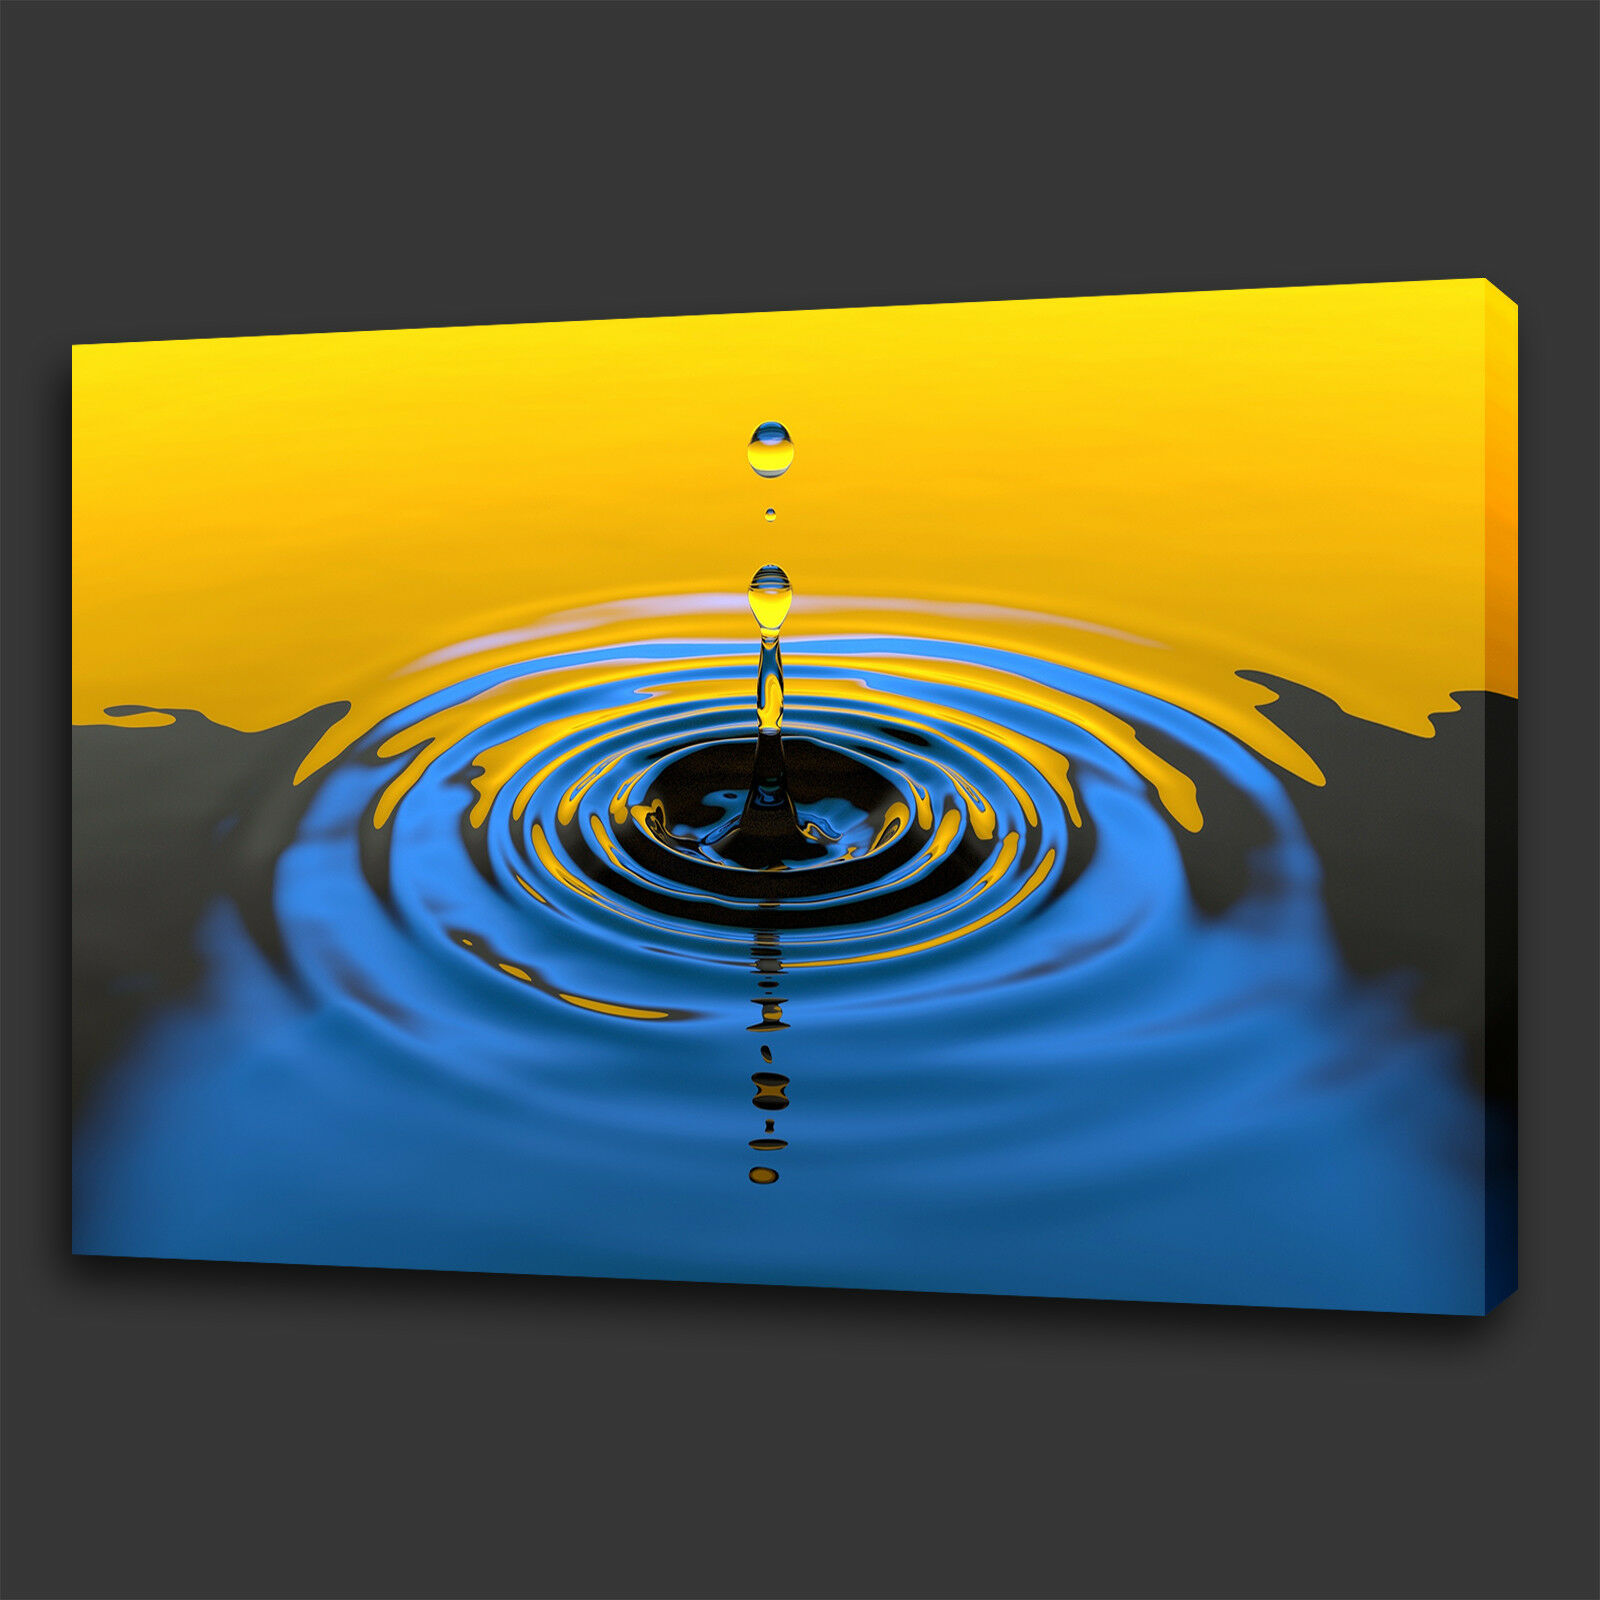 YELLOW BLUE WATER Drop Reflection Box Canvas Print Wall Art Picture ...